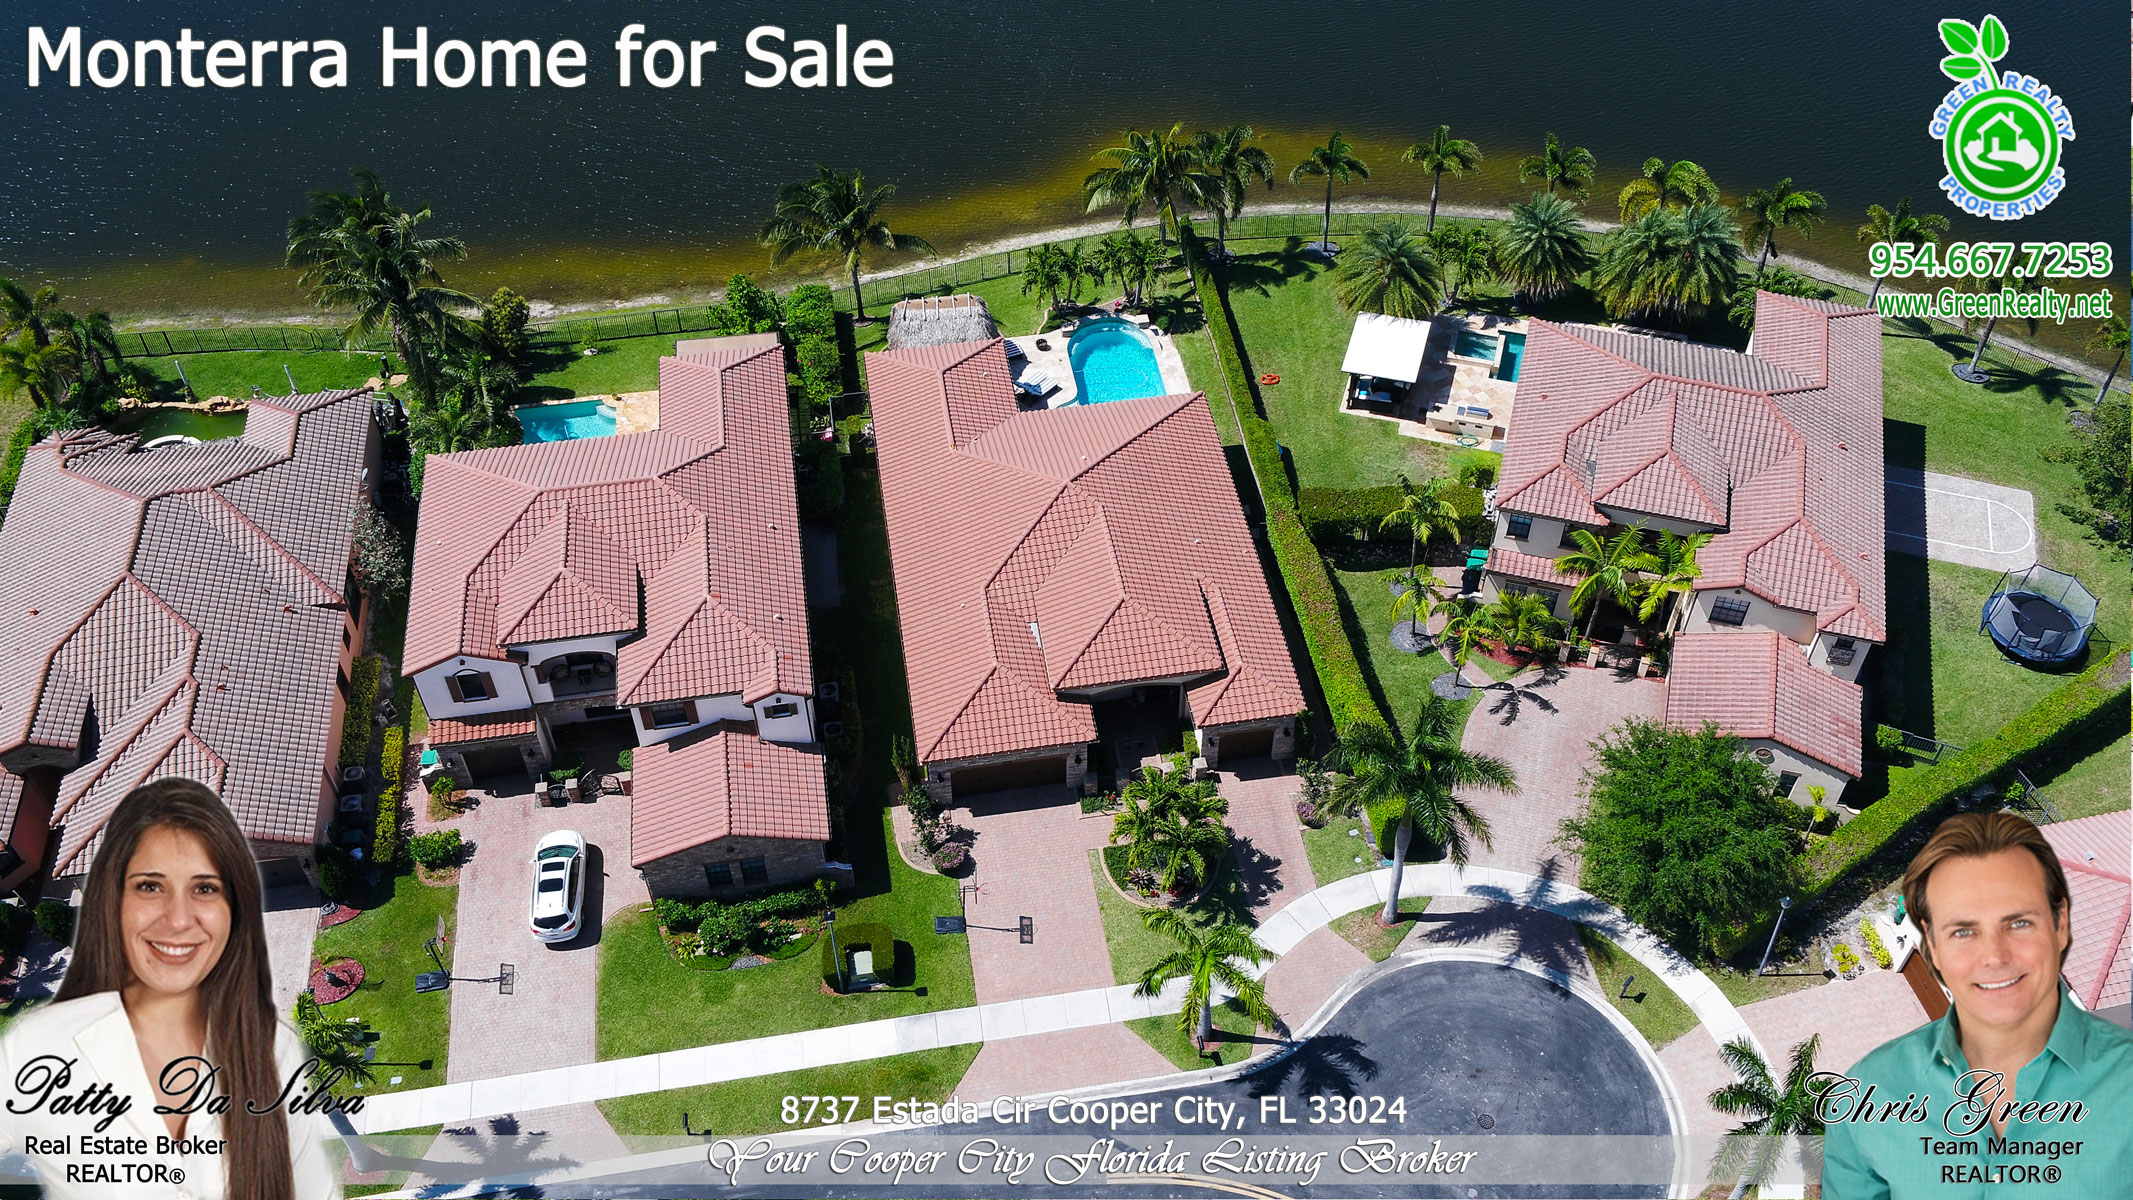 32 LakeView homes in Cooper City